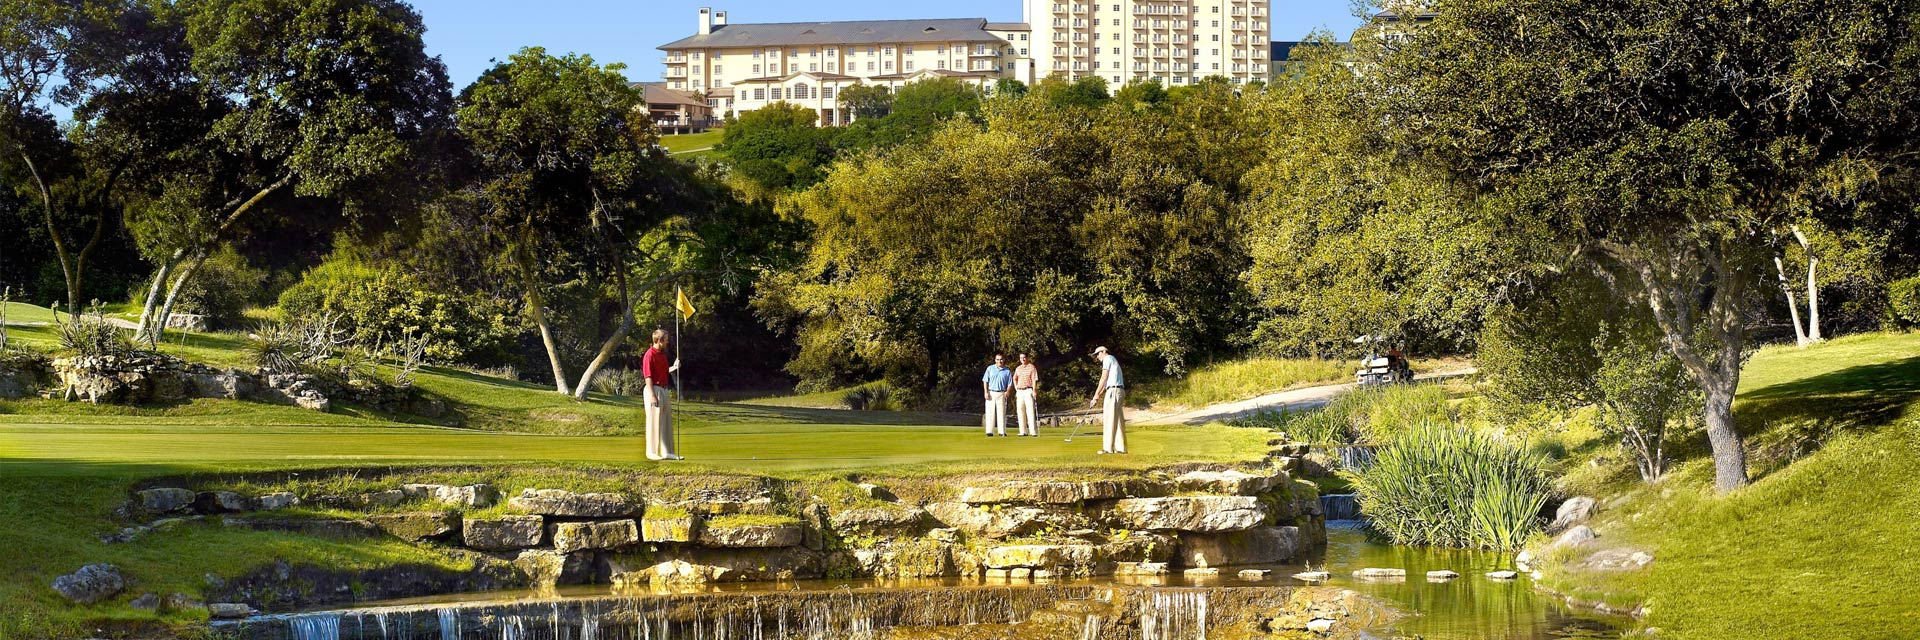 Austin / Barton Creek Golf, TX: Texas' #1 Golf Resort - Unlimited Golf Stay & Play with breakfast for $229 per person, per day!